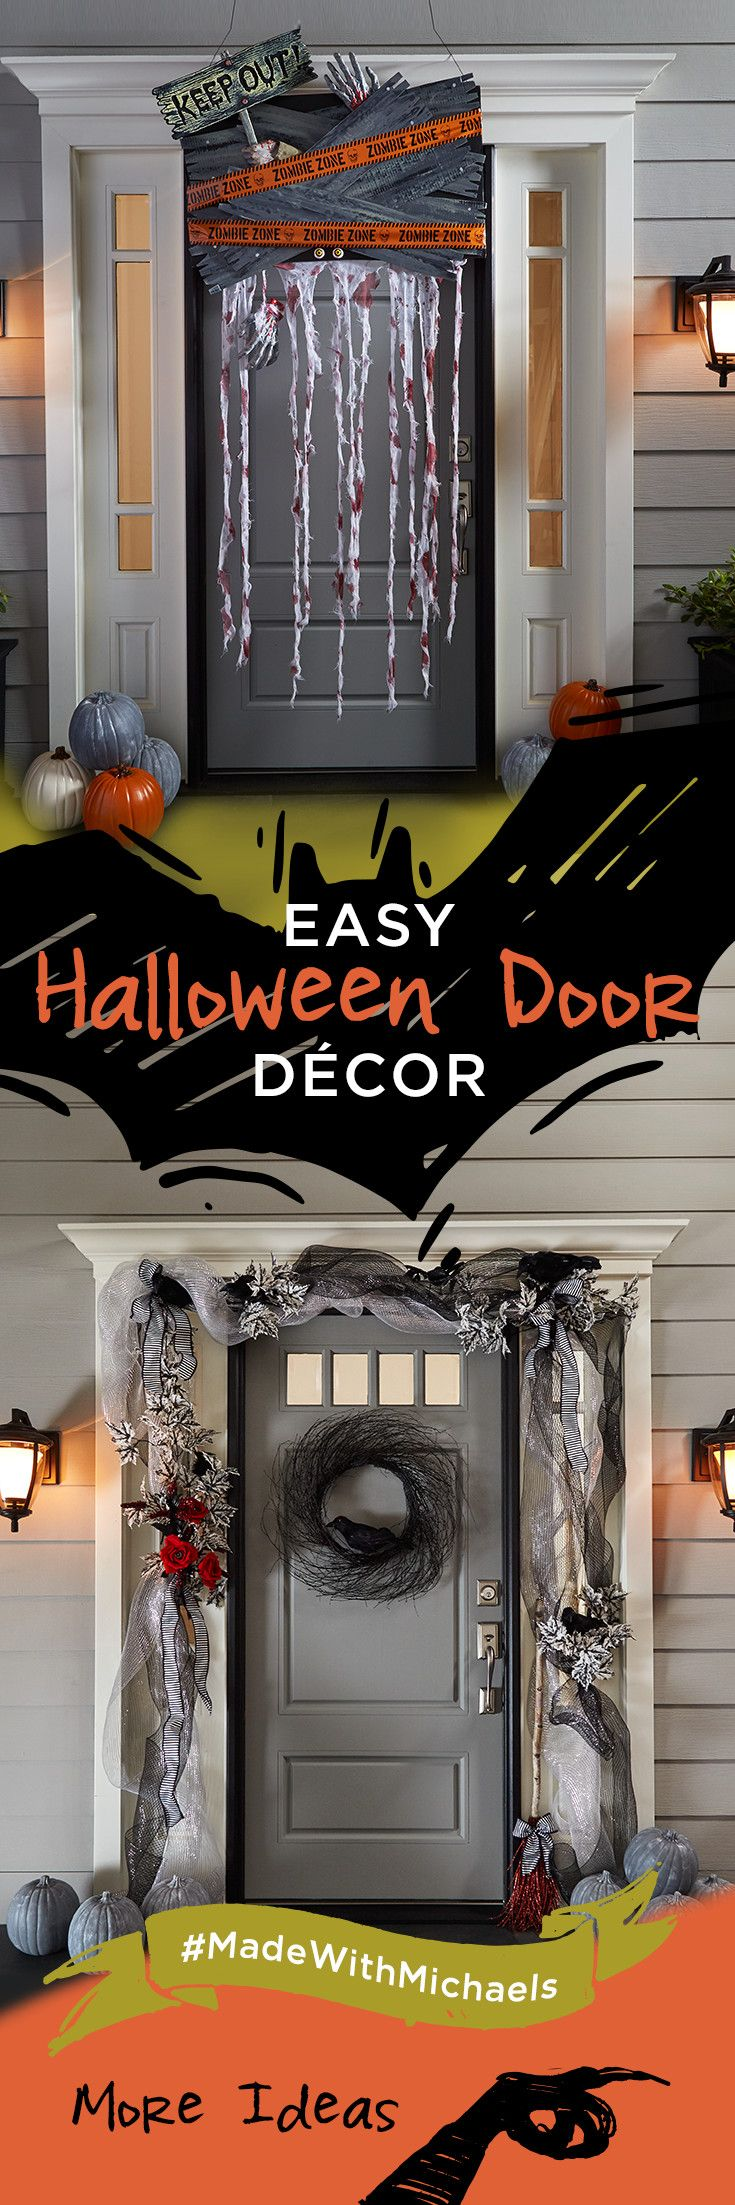 photos of how to decorate your office door for halloween - How To Decorate Your Office Door For Christmas